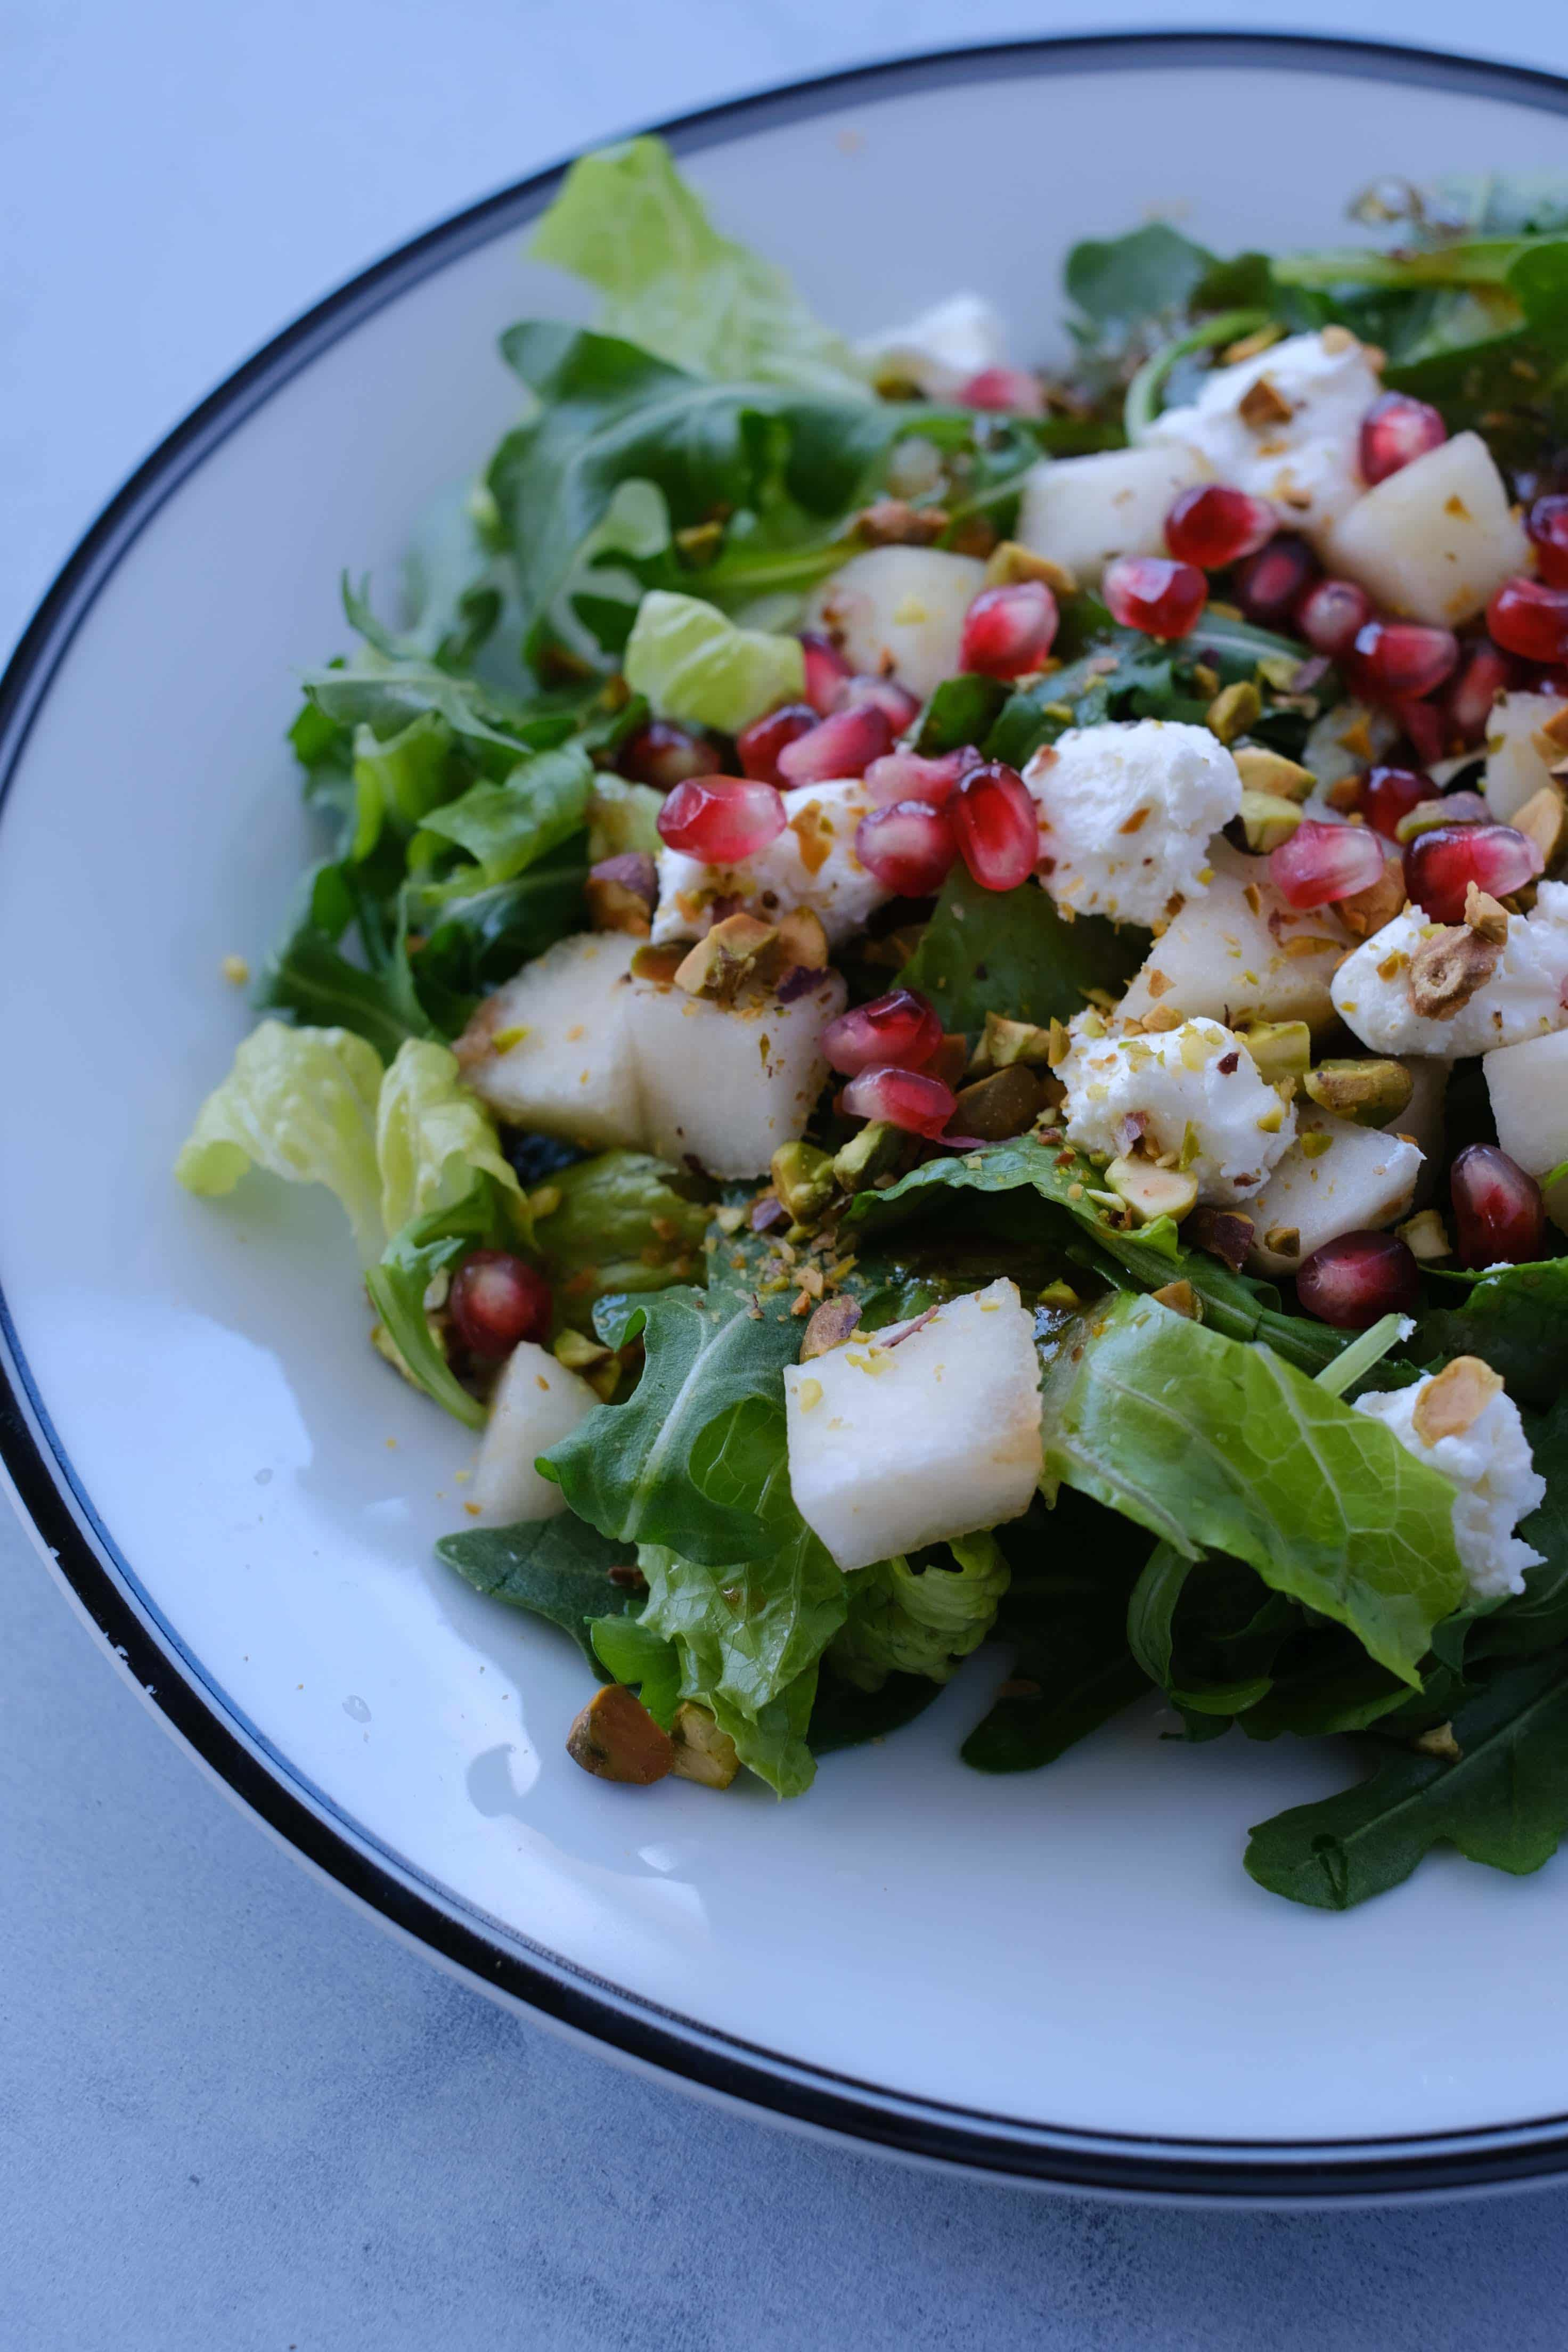 arugula salad with pomegranates on a white plate with black rim